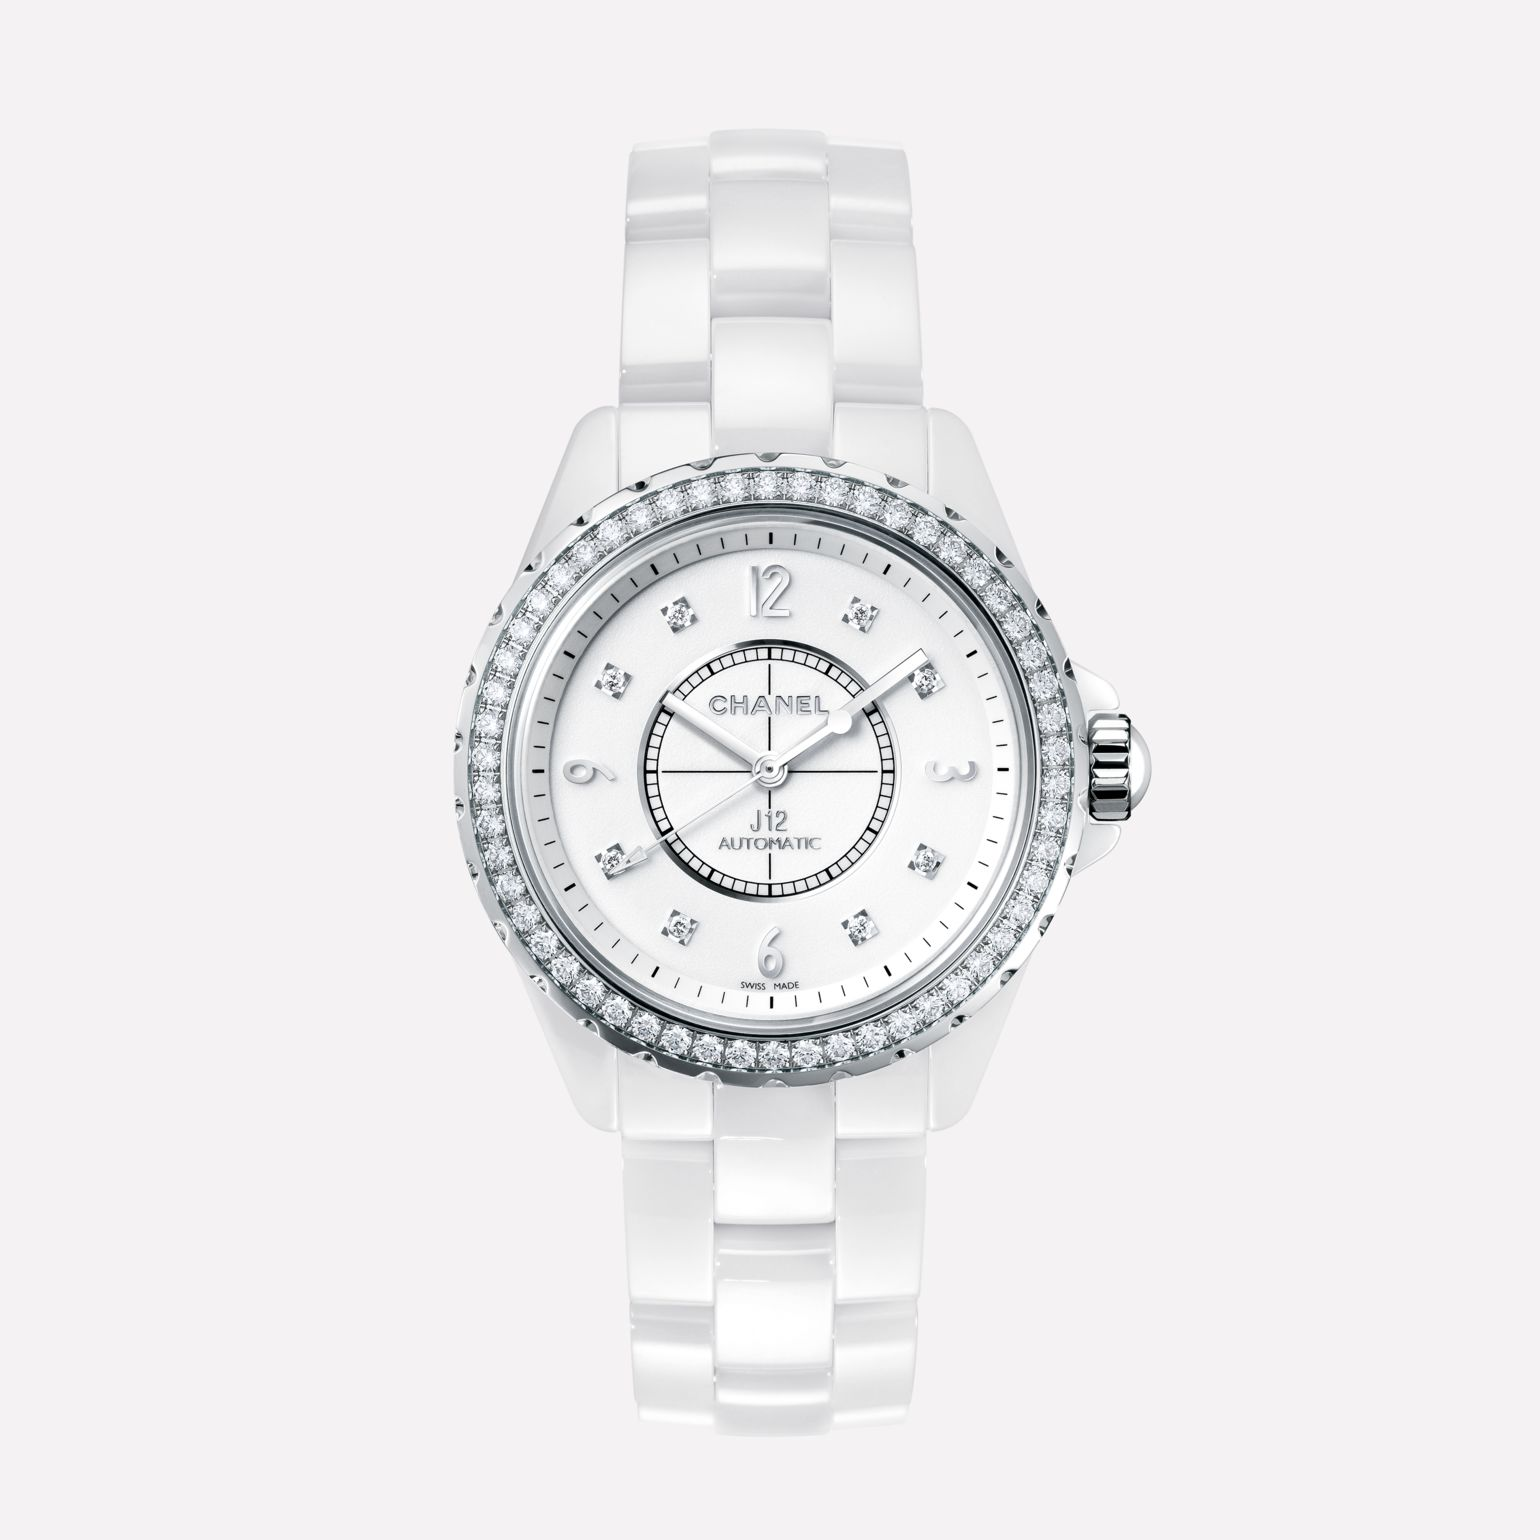 J12 Watch White highly-resistant ceramic and steel, brilliant-cut diamond bezel and indicators